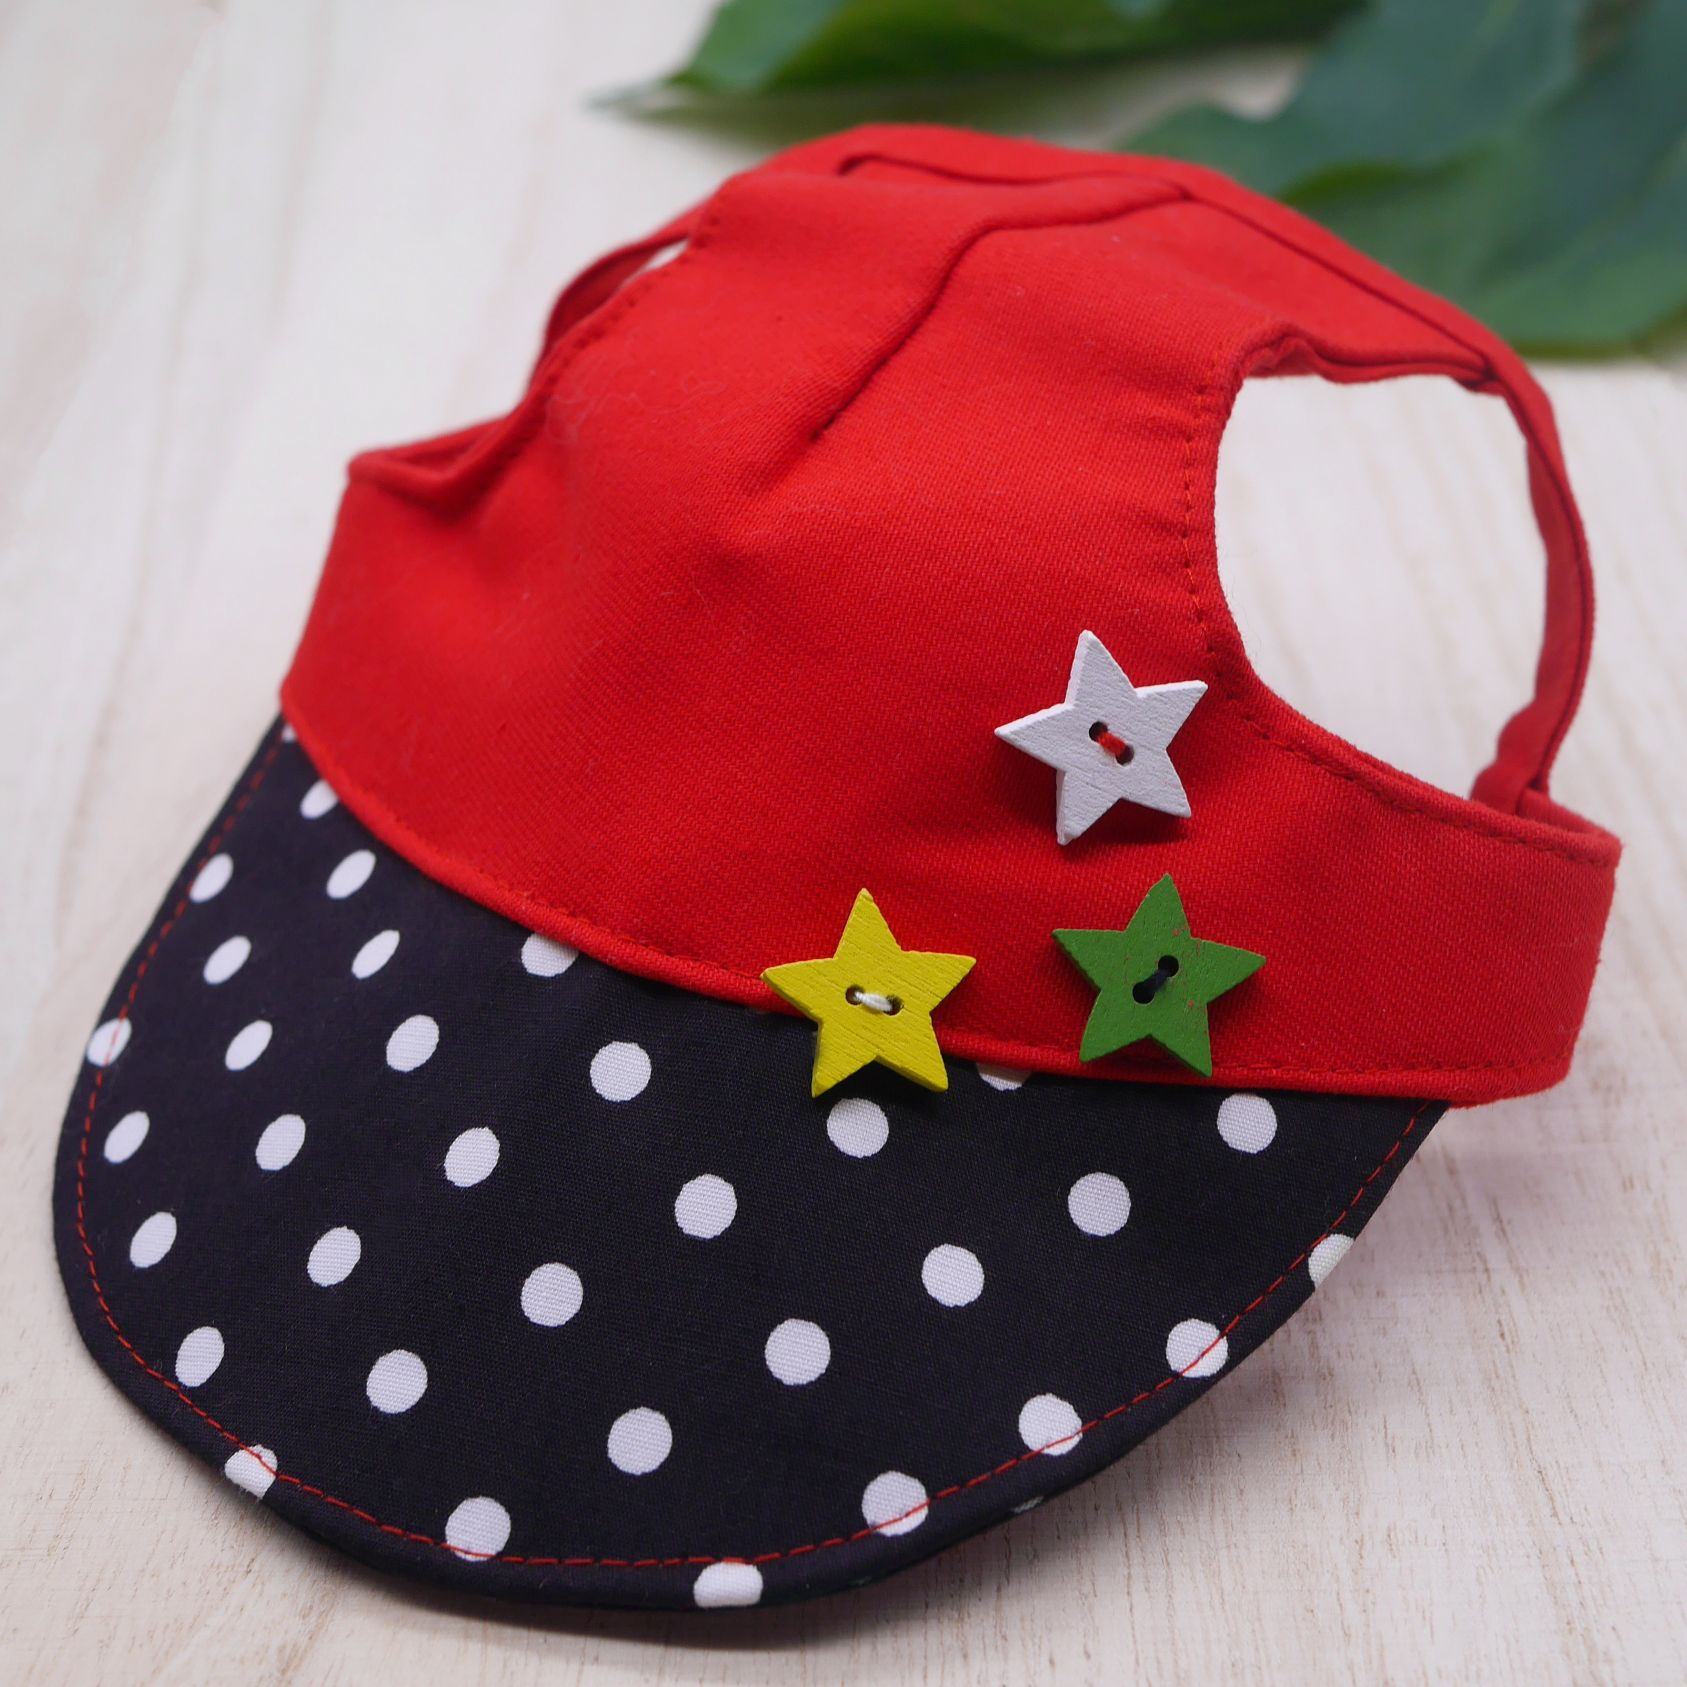 Walking Caps For Him - Polka Pop with Stars